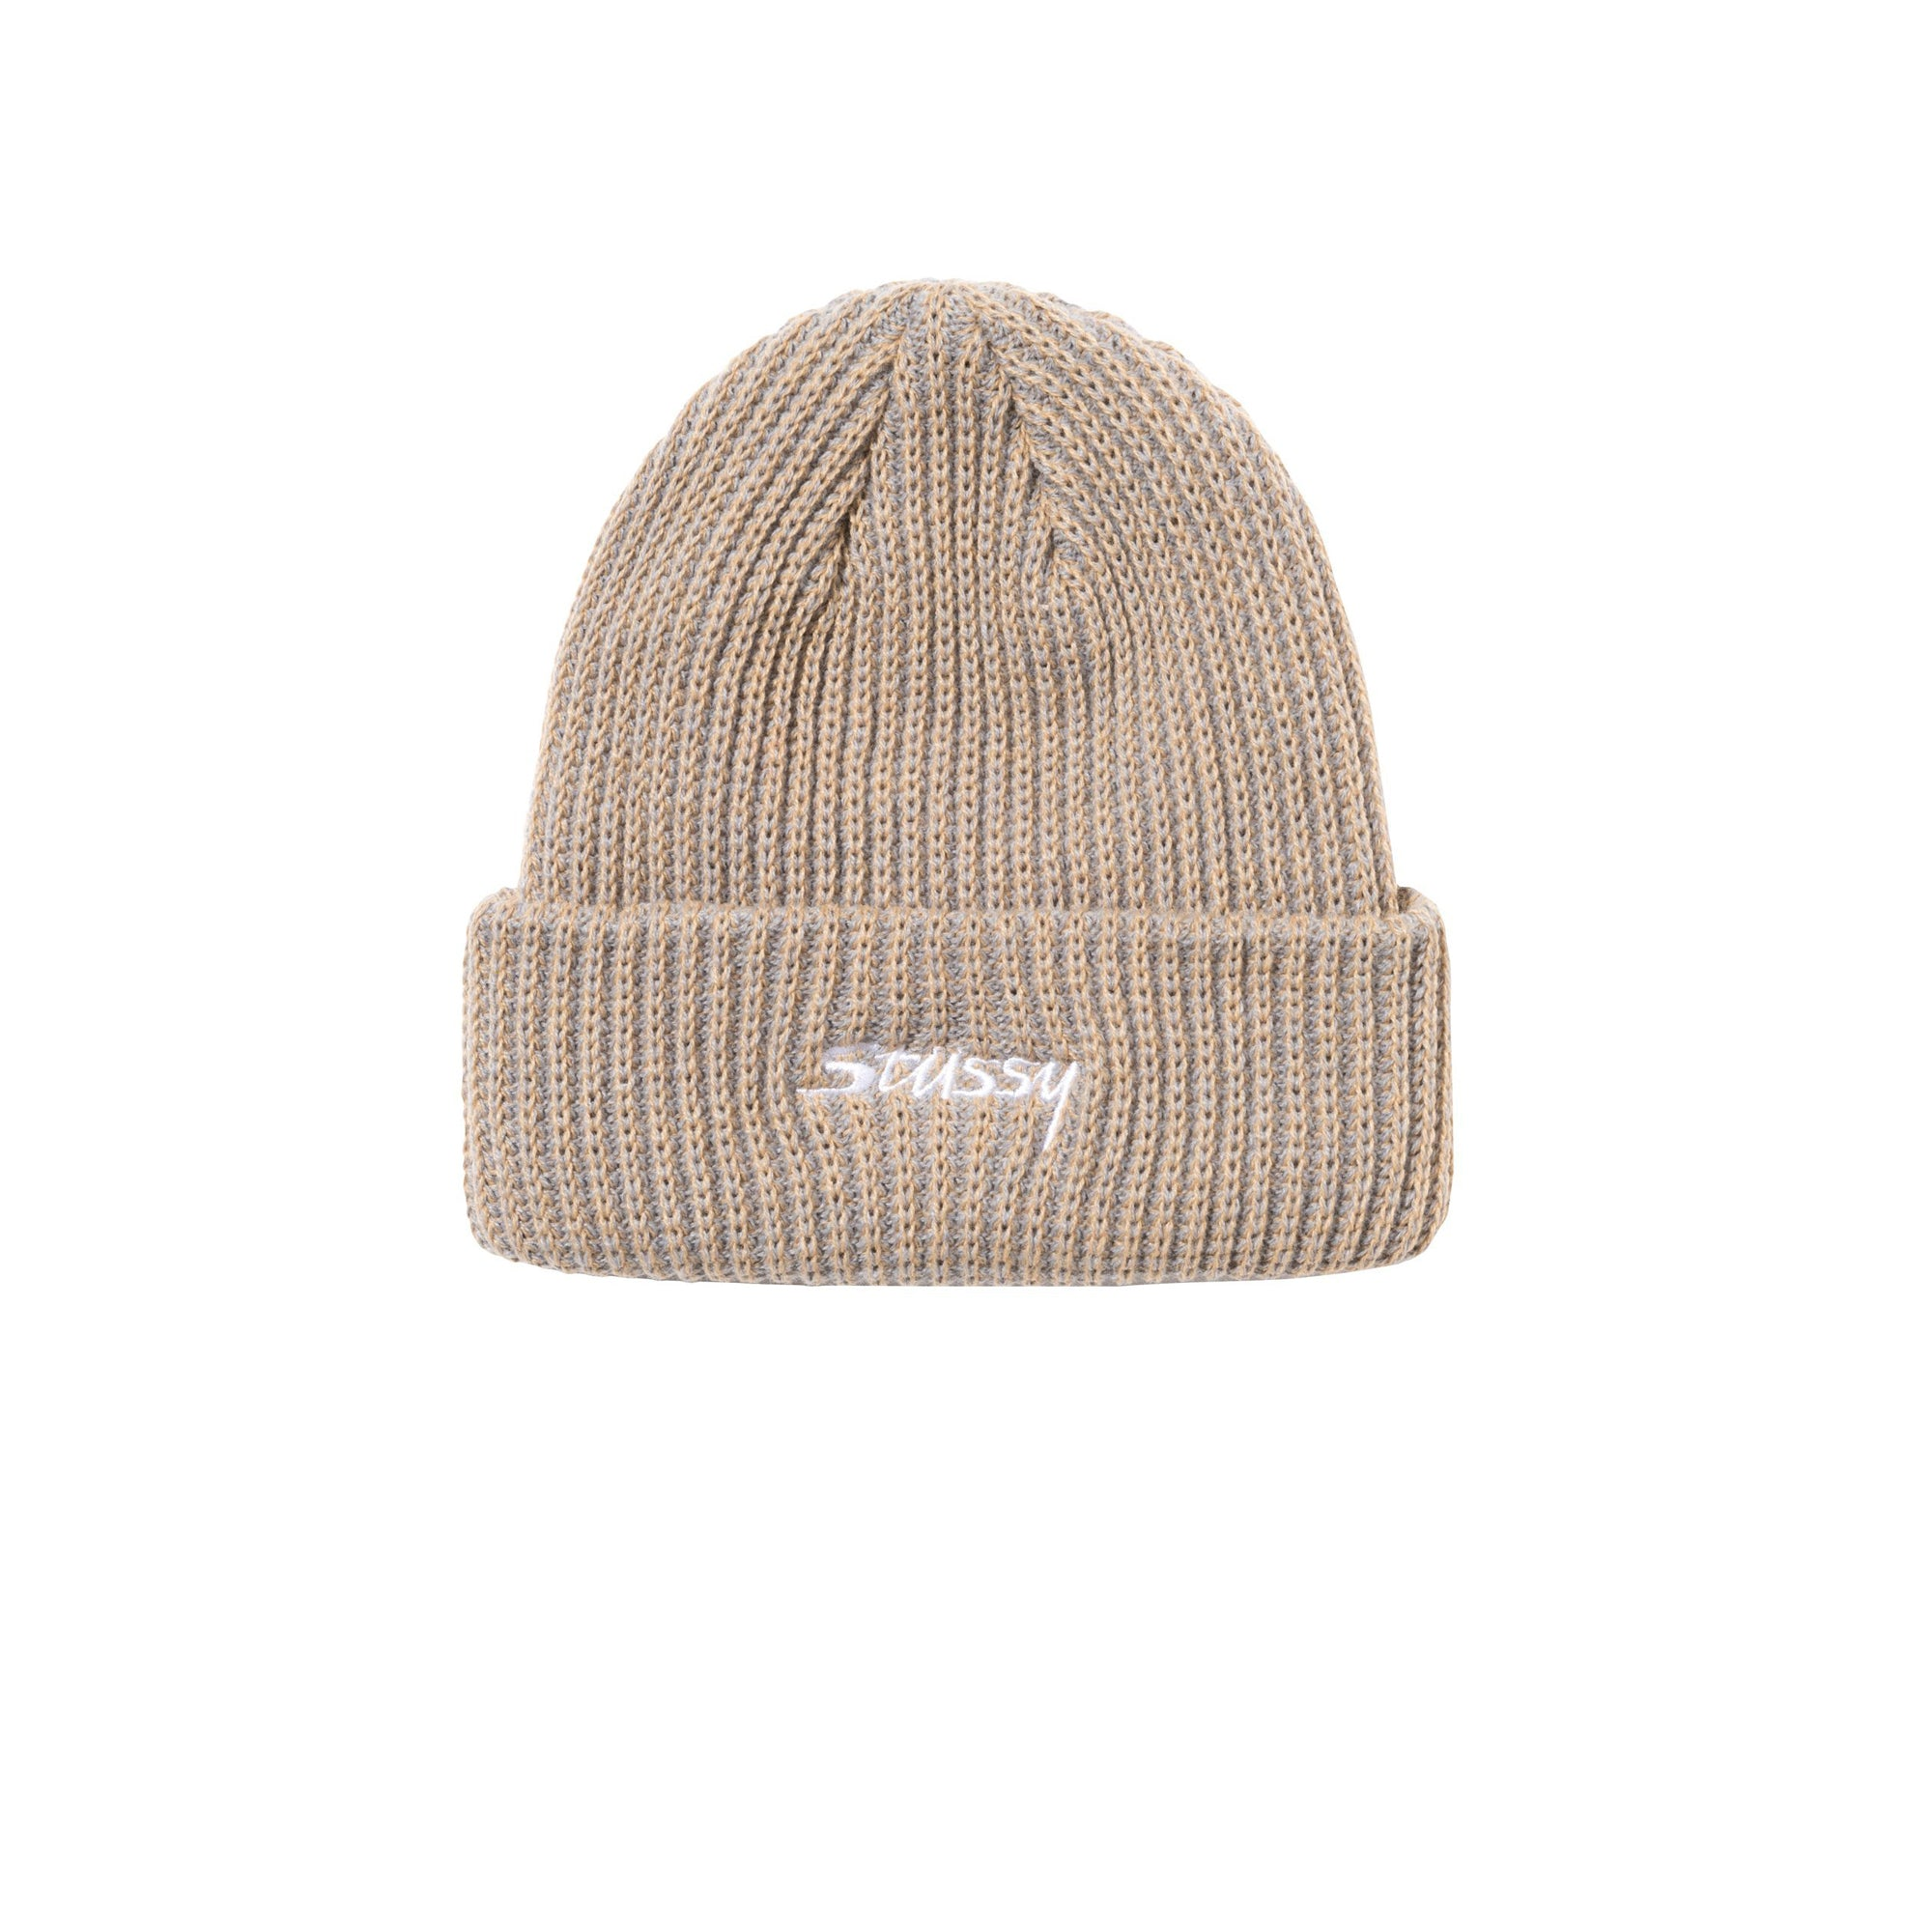 Stussy 2 Tone Knit Short Beanie Tan